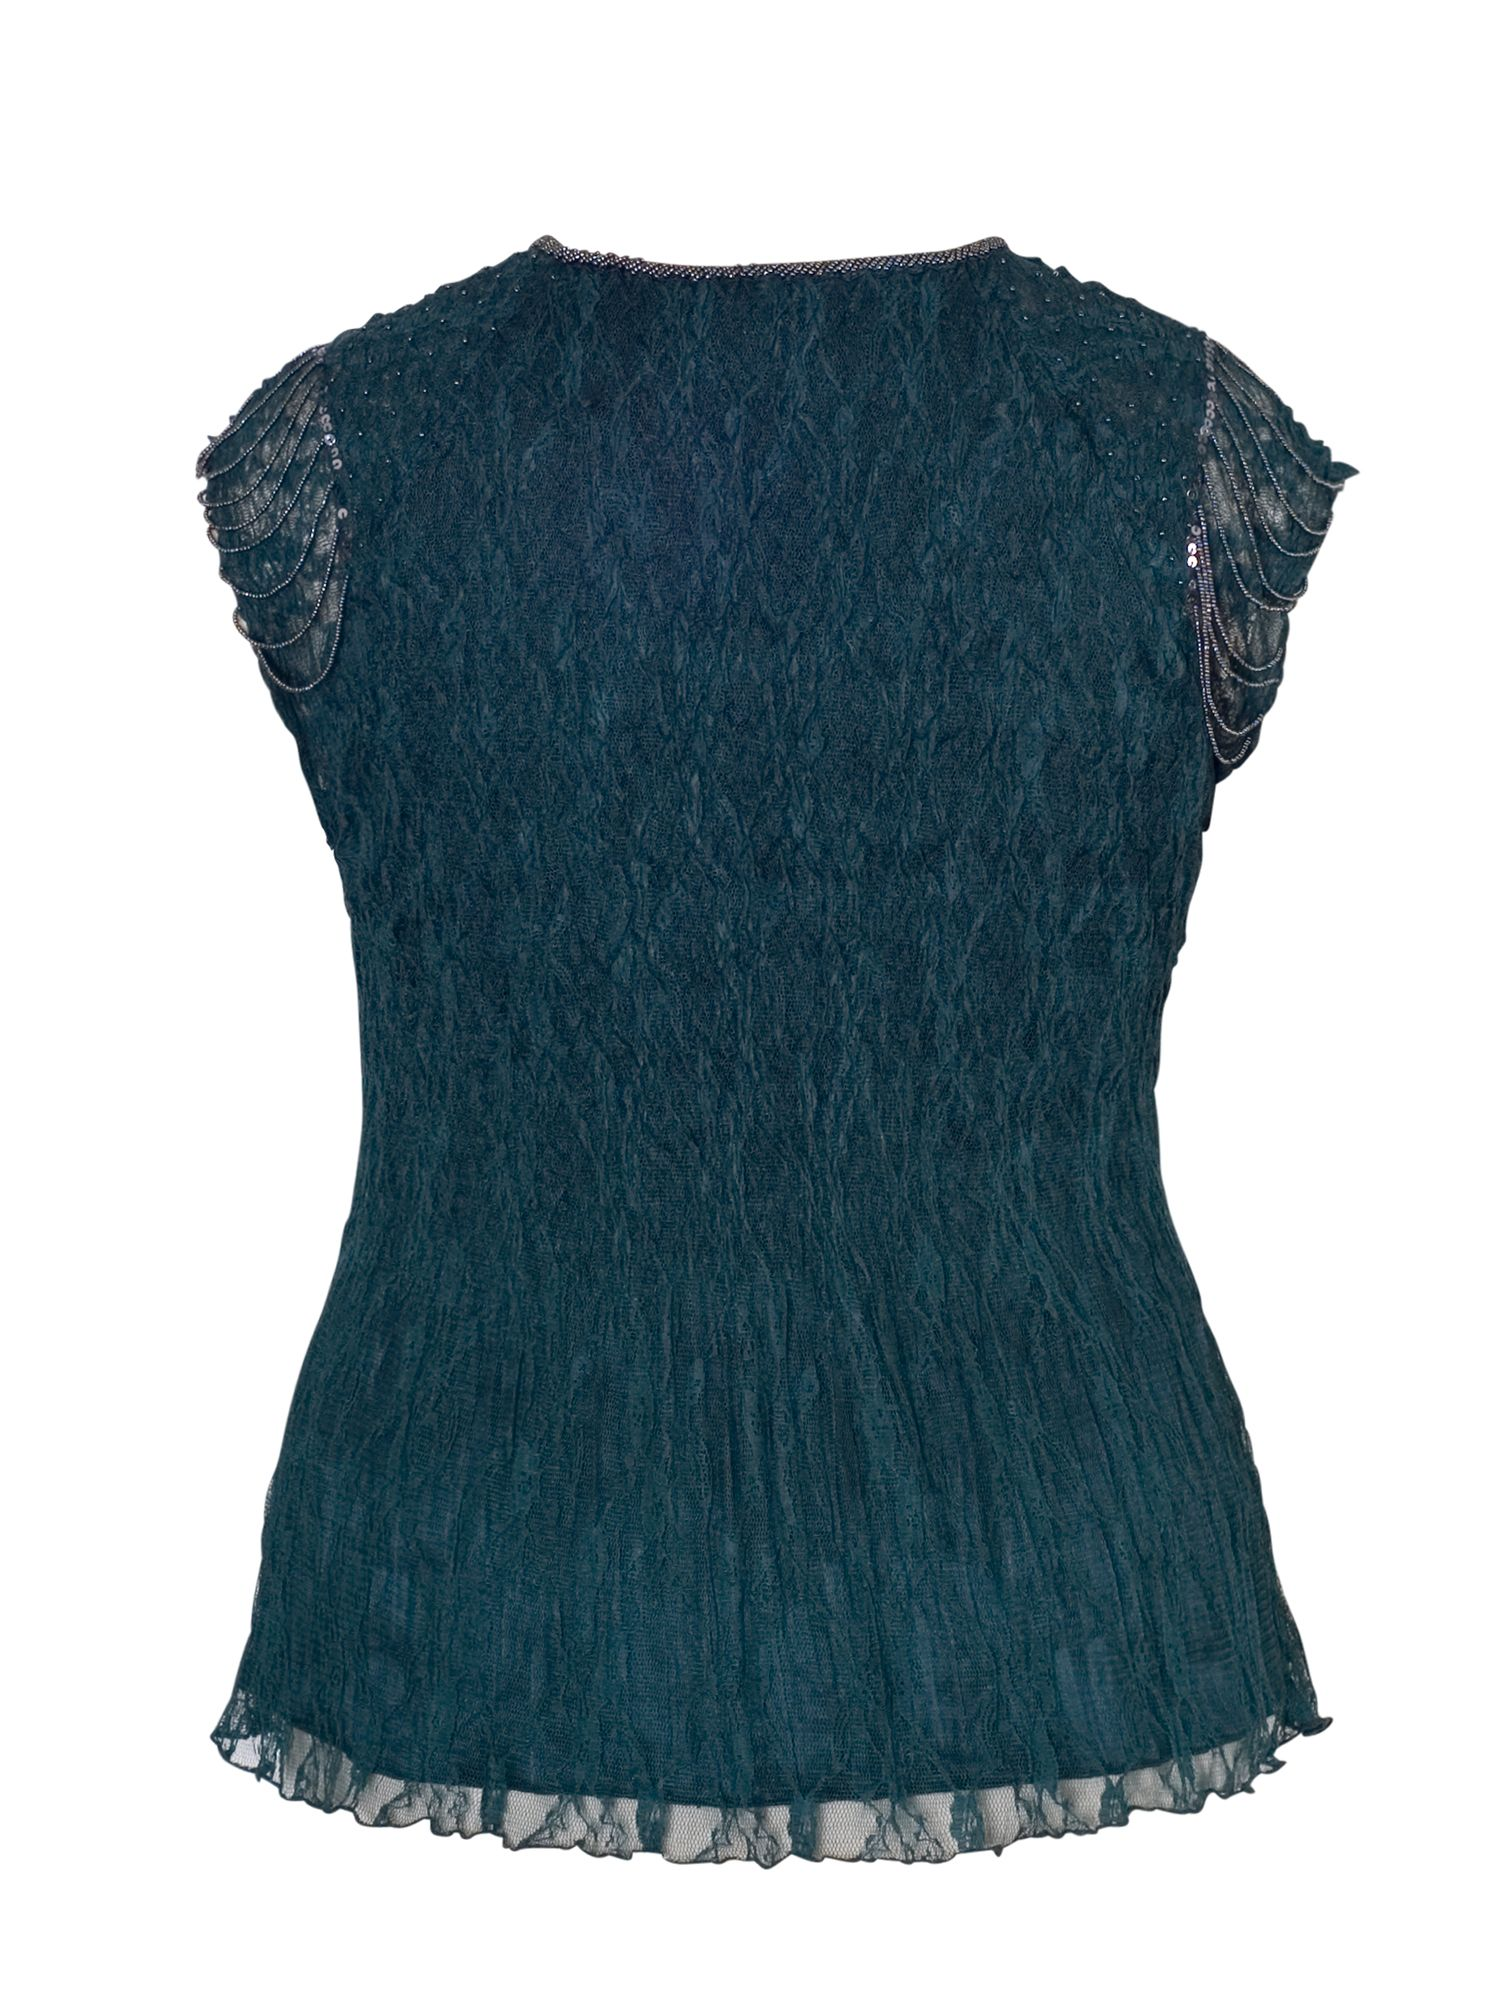 Ink Crush Pleat Top with Beaded Sleeves